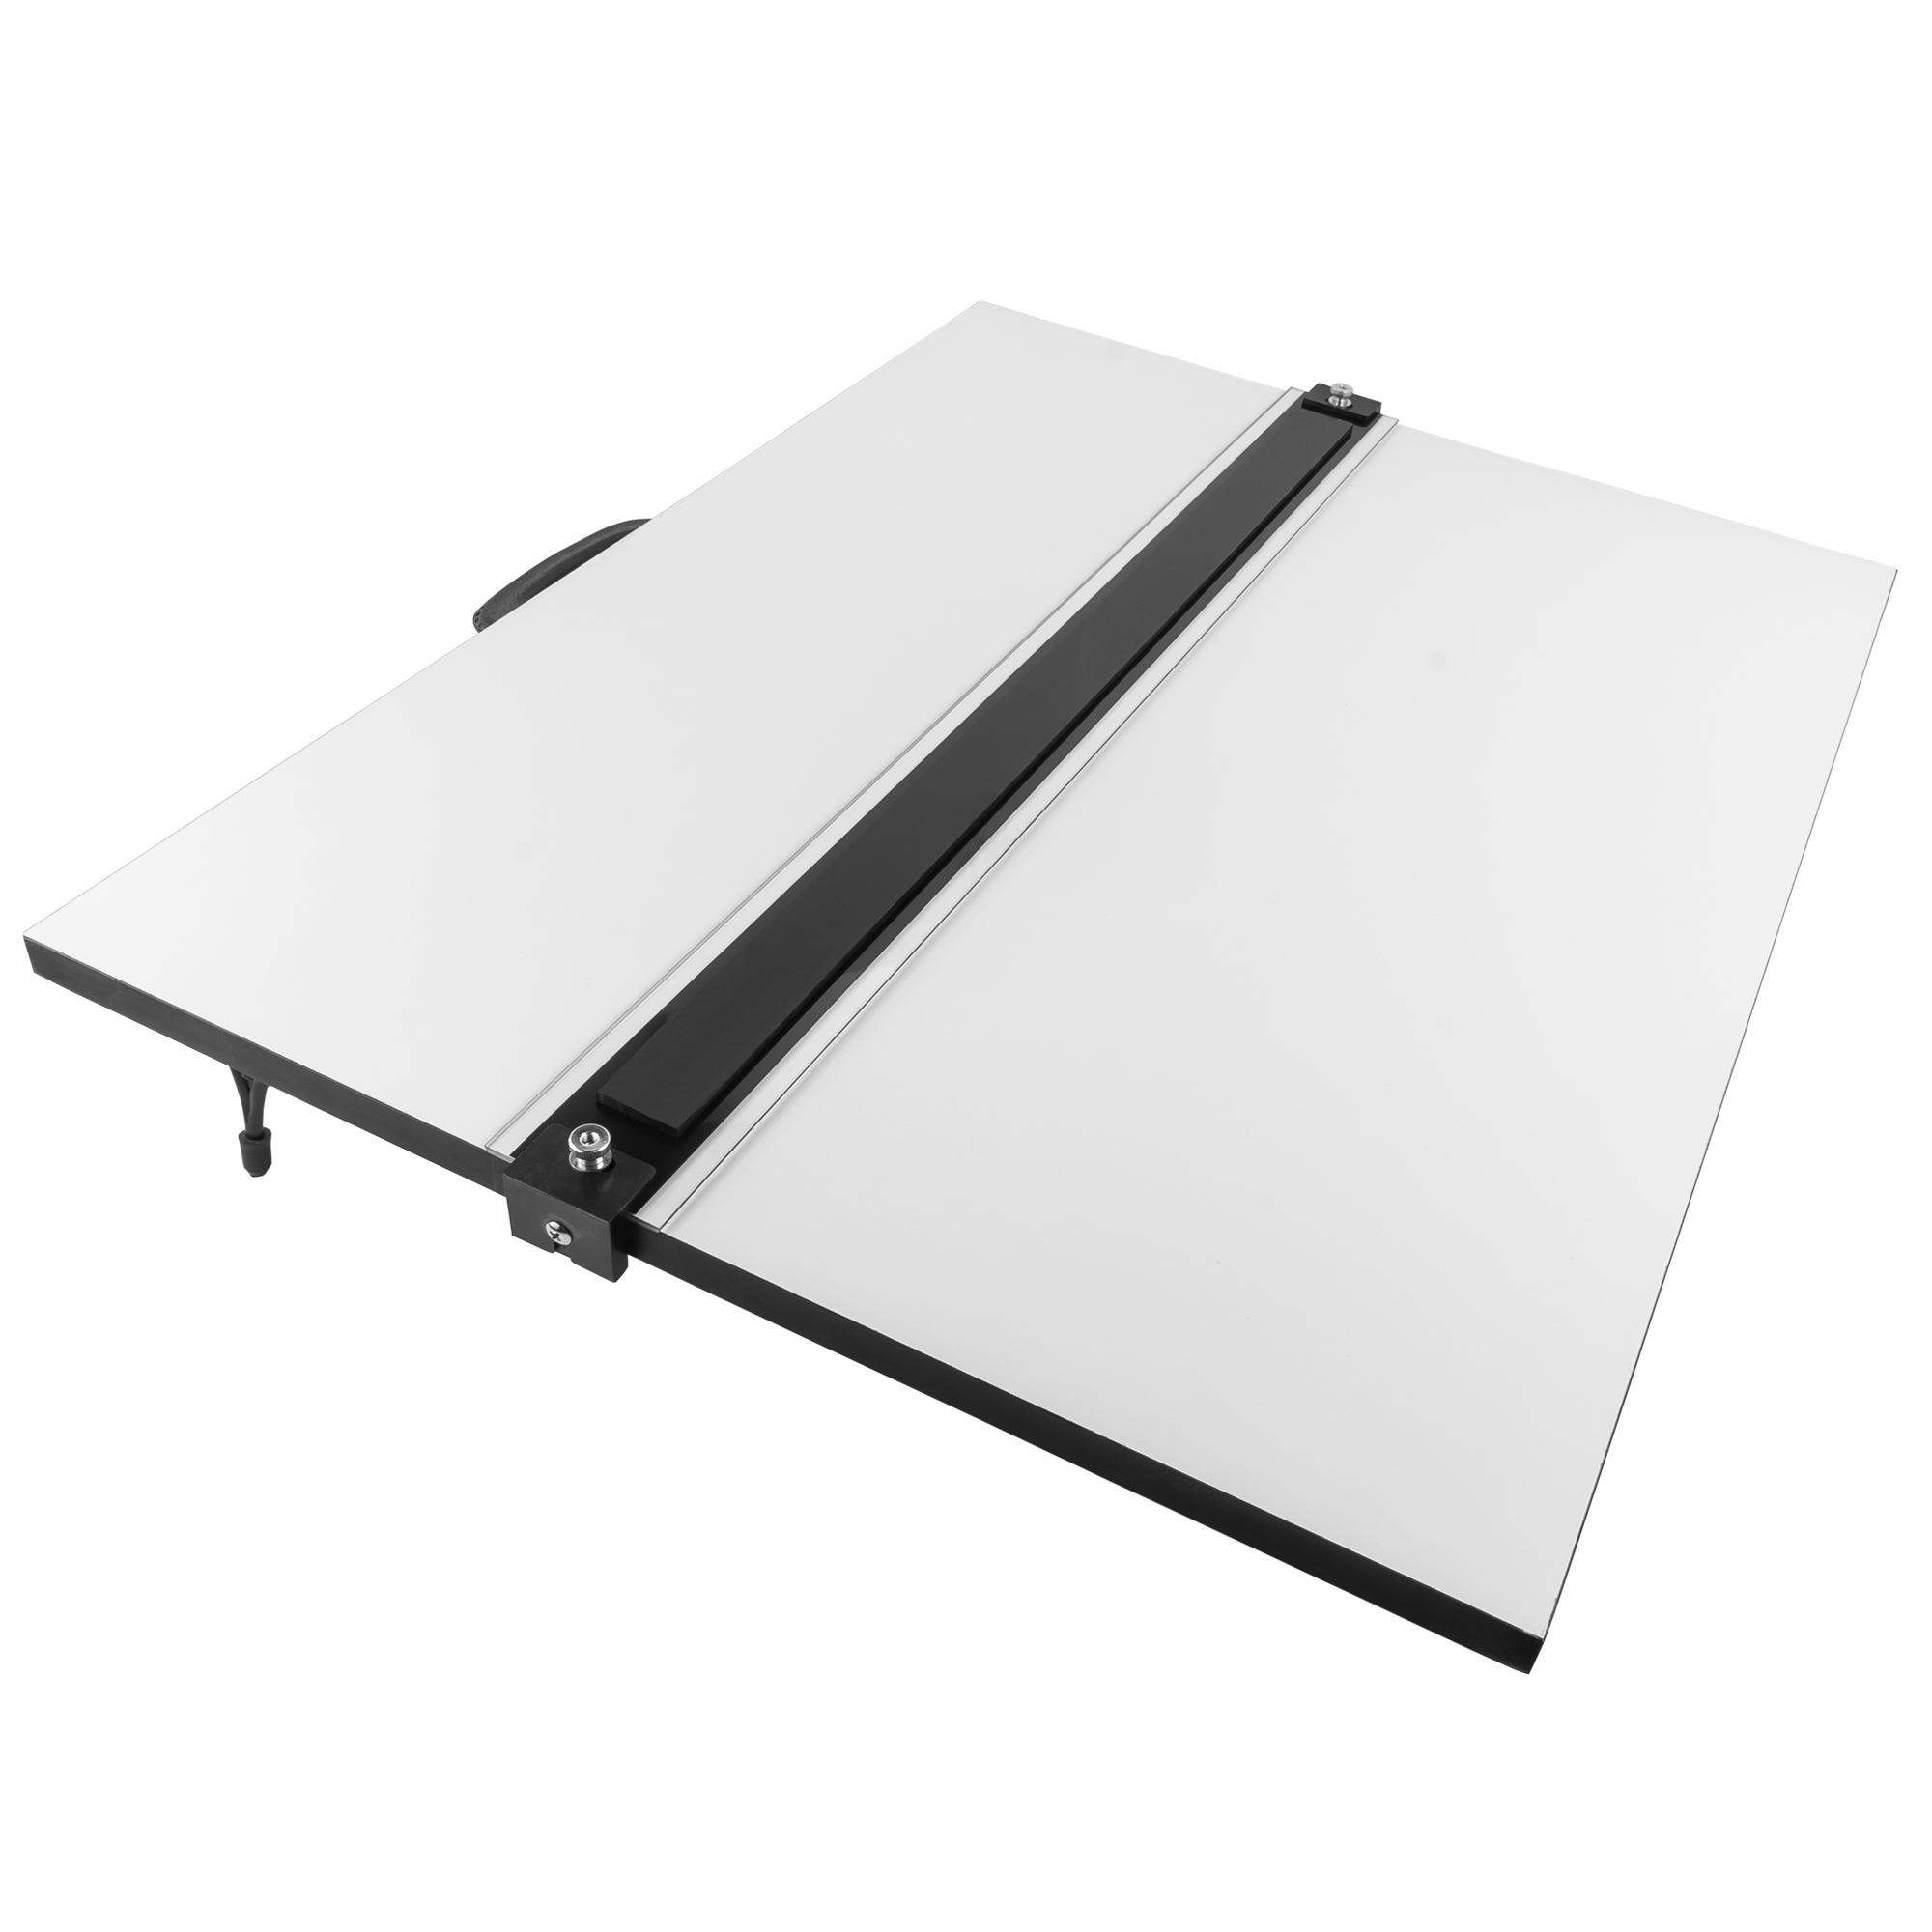 Drafting drawing board by pacific arc, the stb drawing board